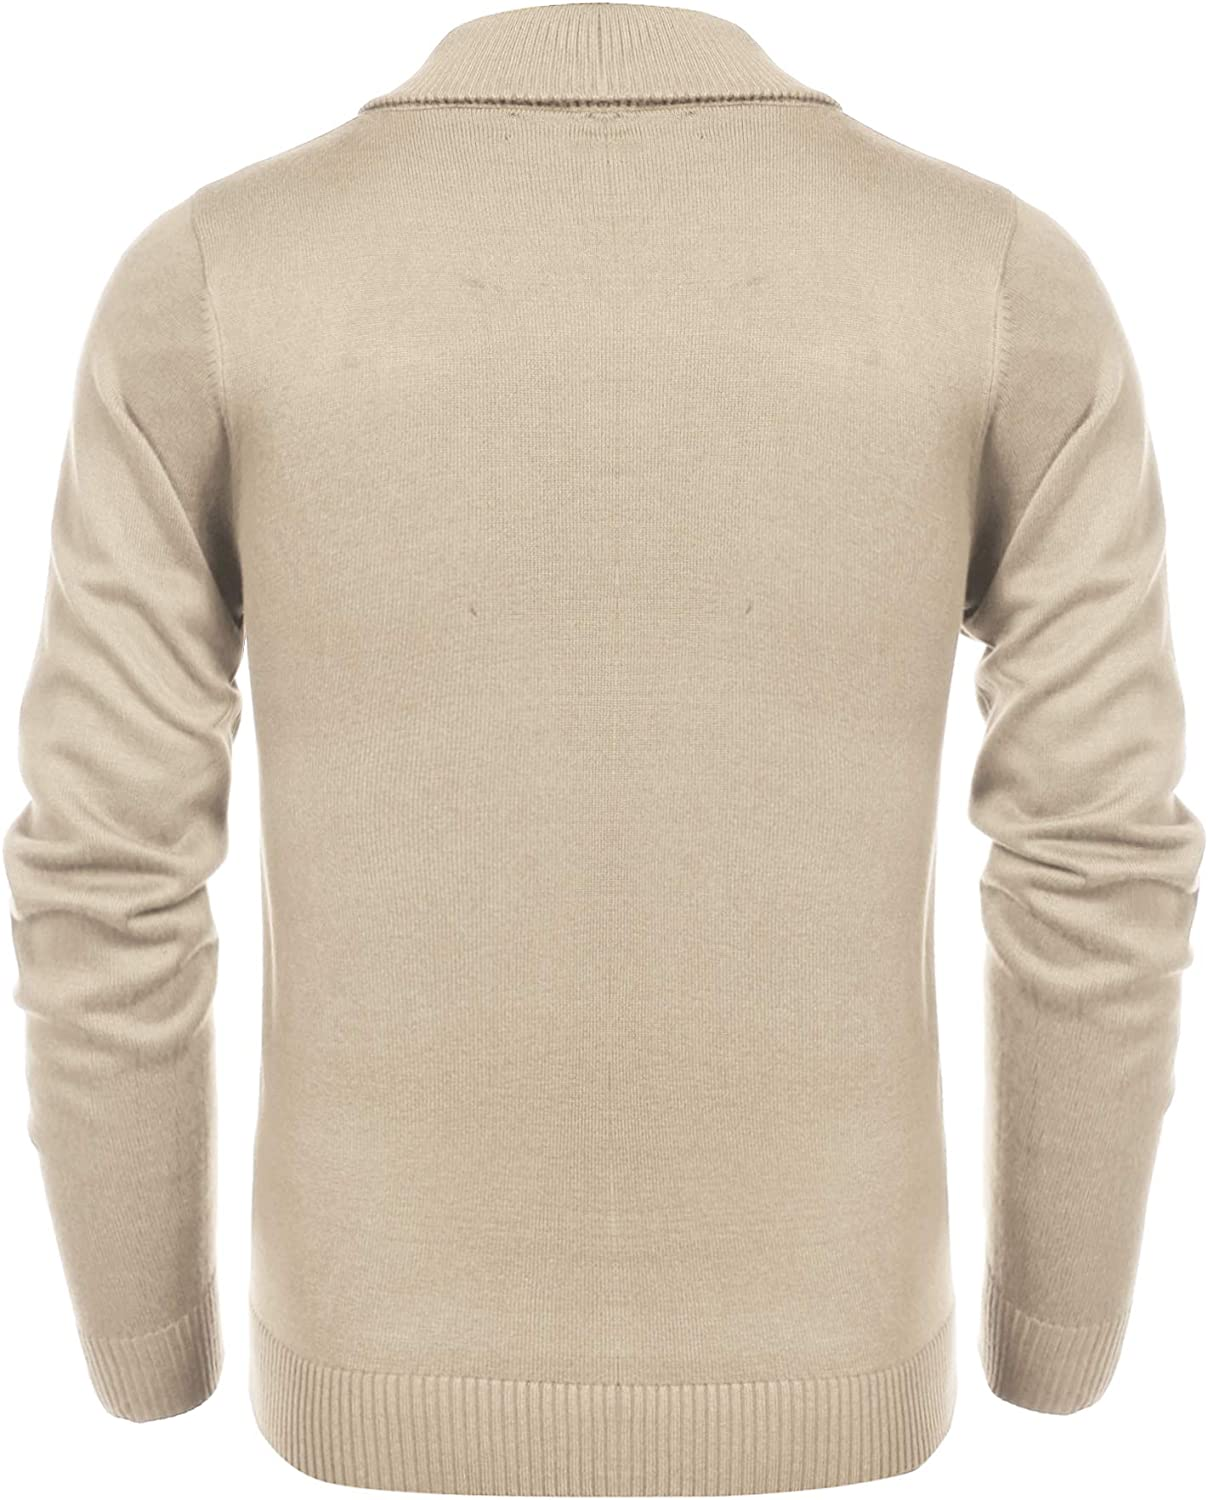 COOFANDY Mens Shawl Collar Long Sleeve Pullovers Casual Slim Fit Cable Knit Sweaters